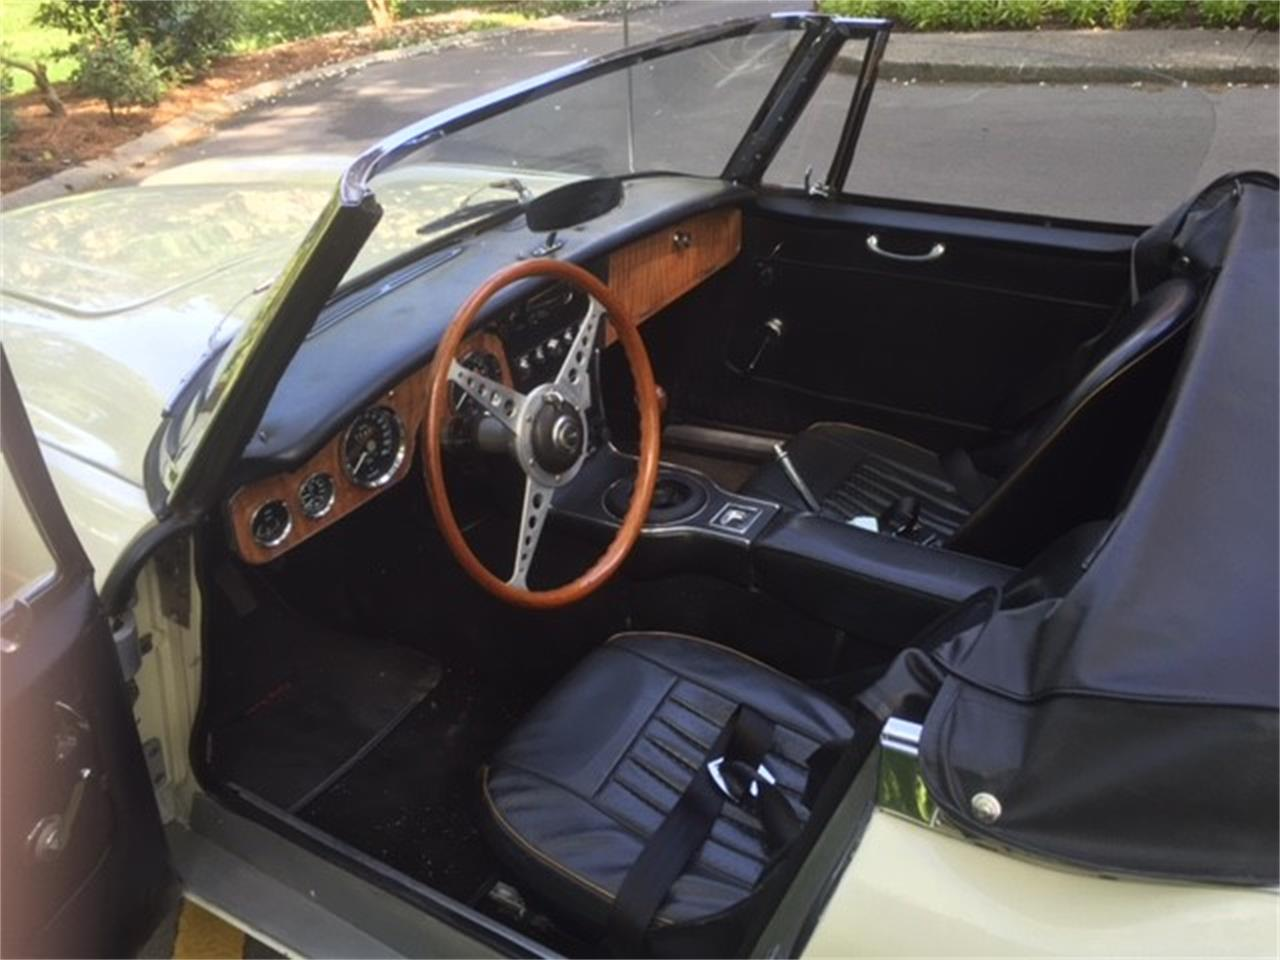 Large Picture of Classic 1967 Austin-Healey 3000 Mark III located in Nashville Tennessee - $52,000.00 Offered by a Private Seller - L3I0